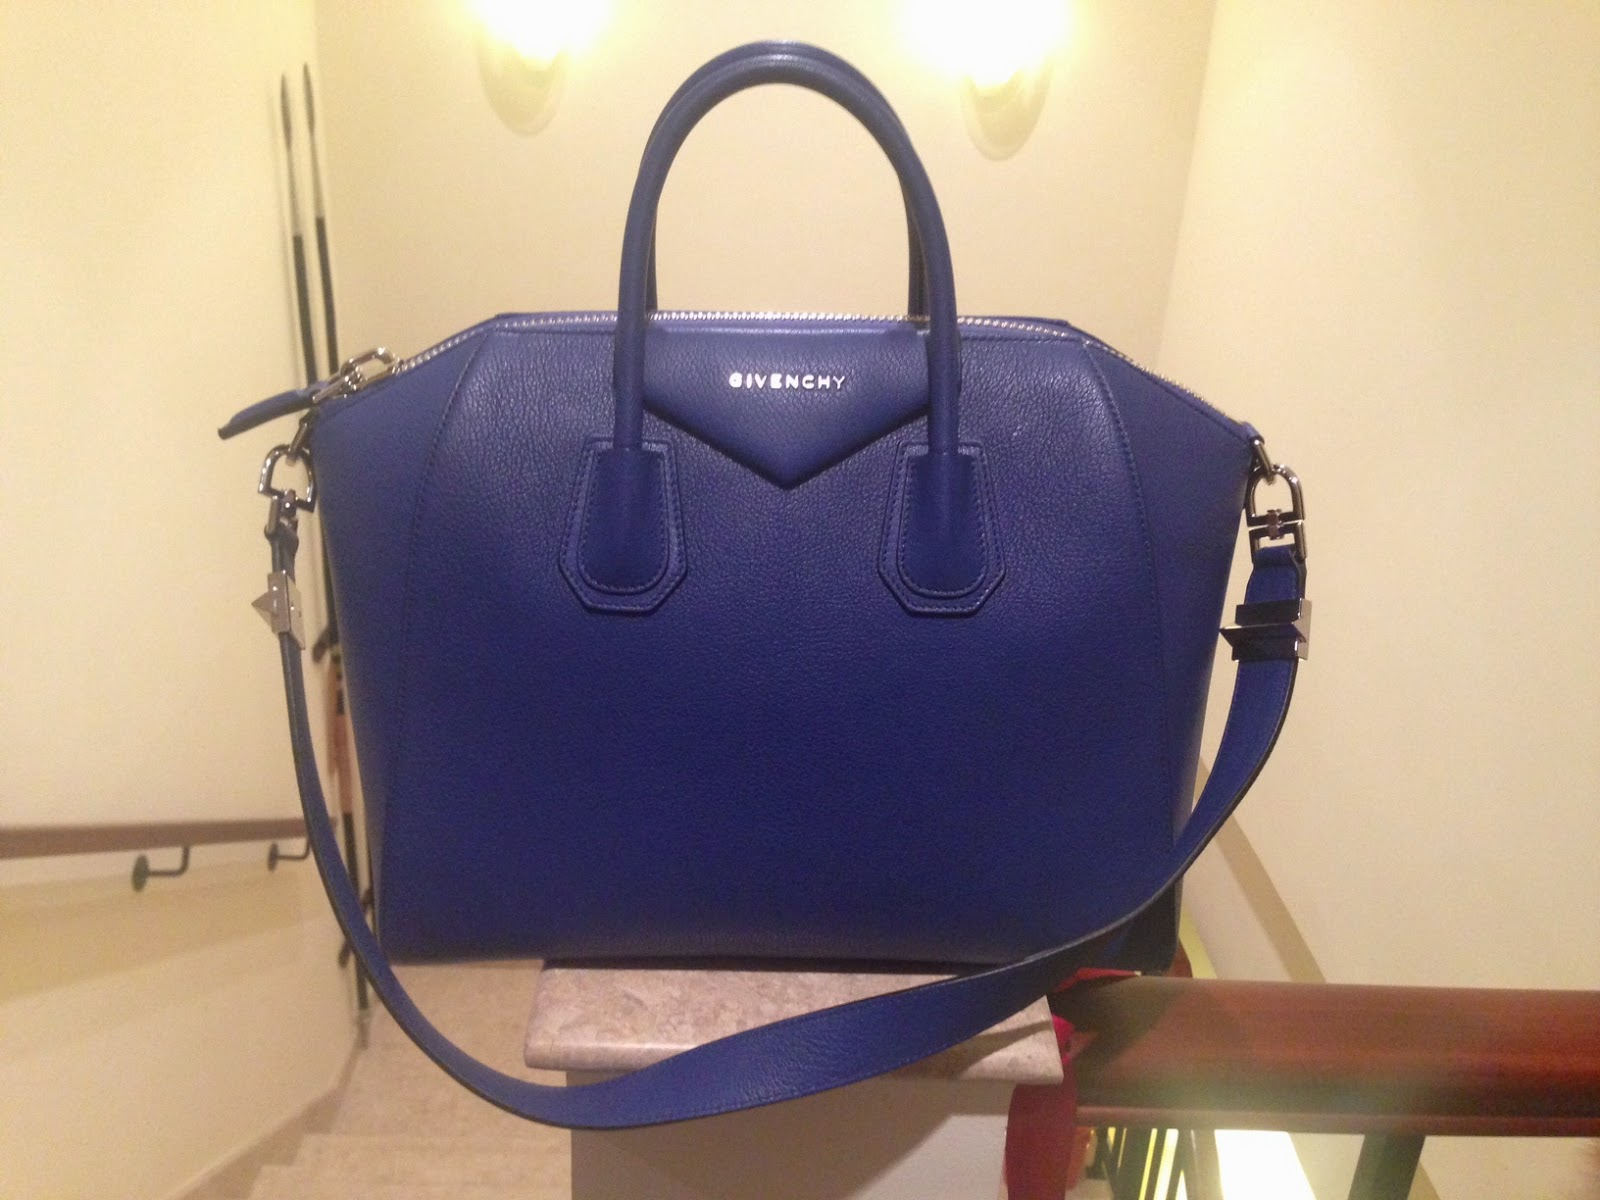 Bag Review – Replica Givenchy Antigona Medium In Blue Leather dcf4589a214c6